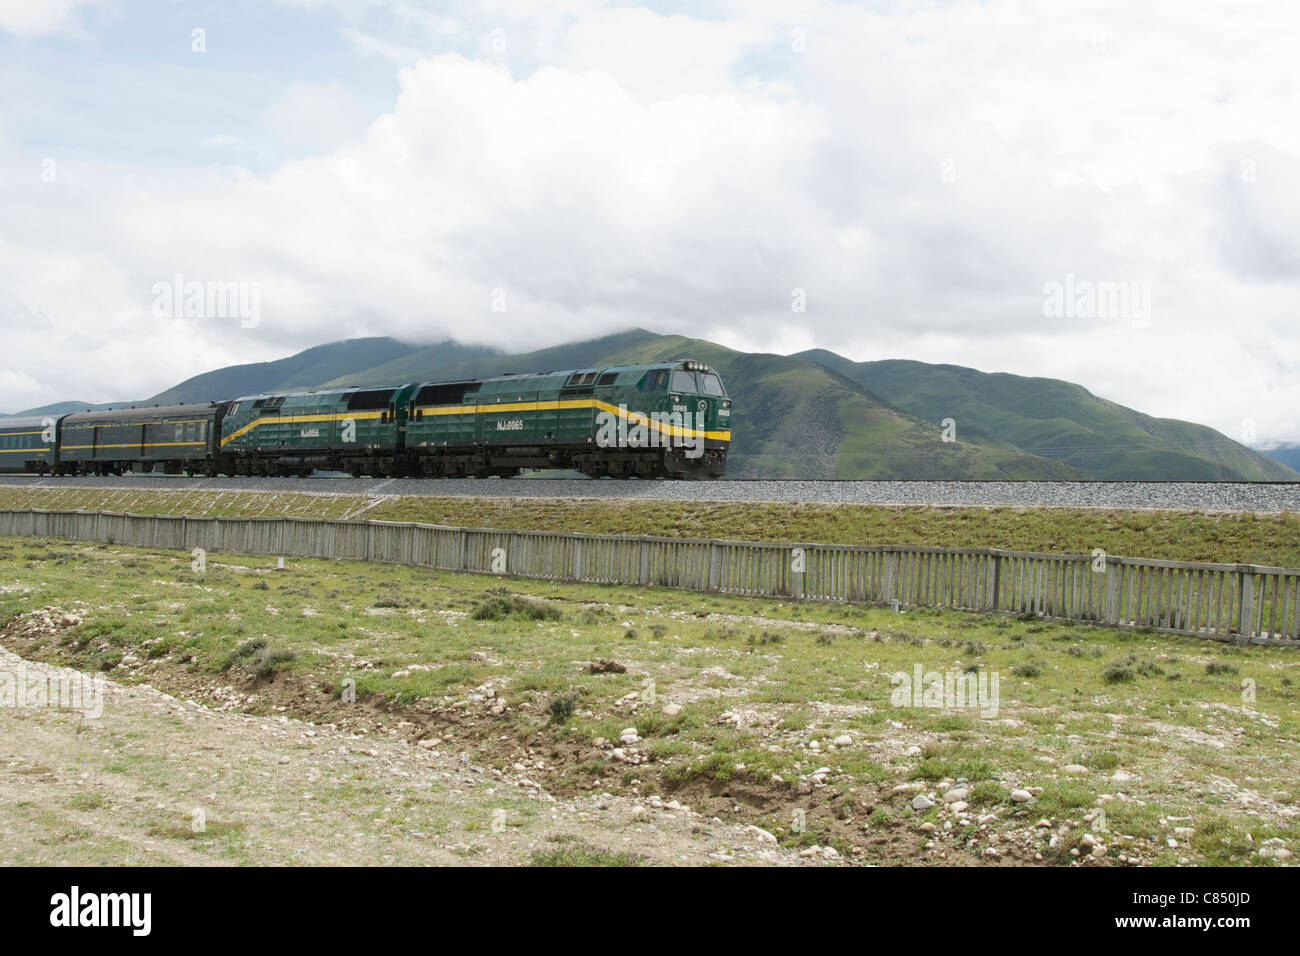 Qinghai–Xizang train Stock Photo